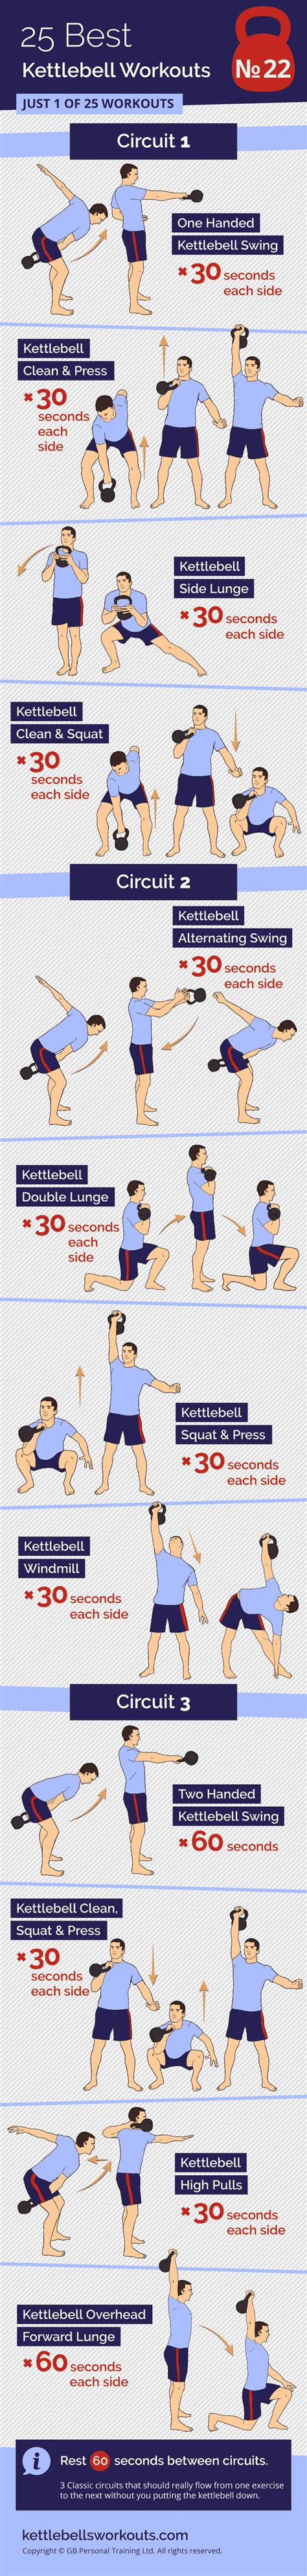 kettlebell circuits classic alternating